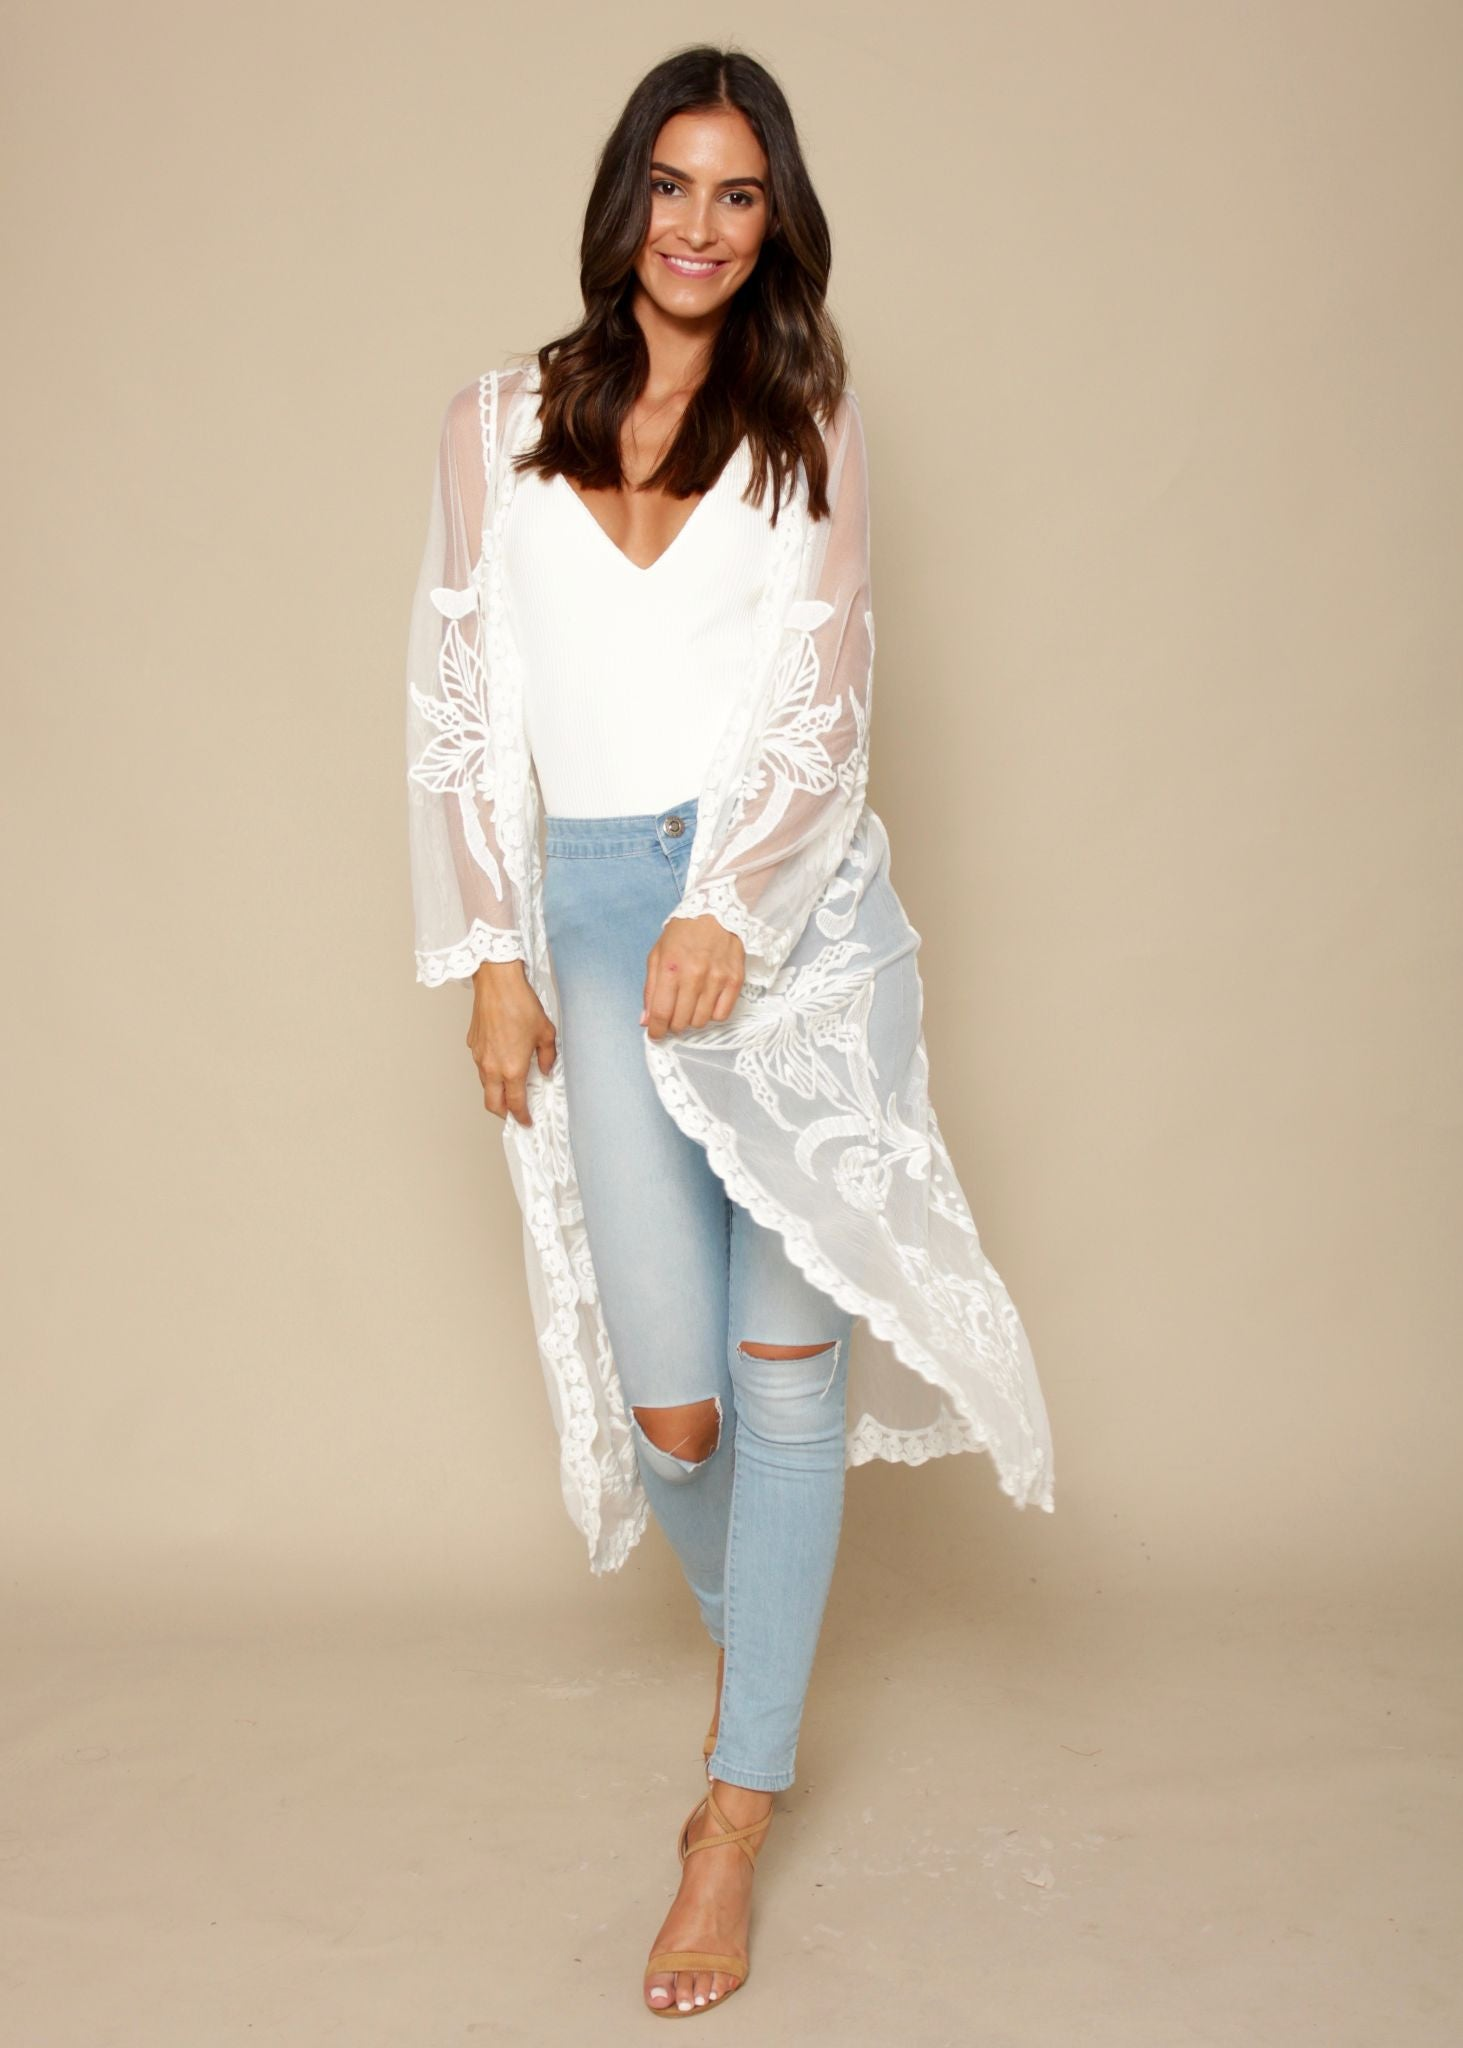 Gardenia Lace Cape - White